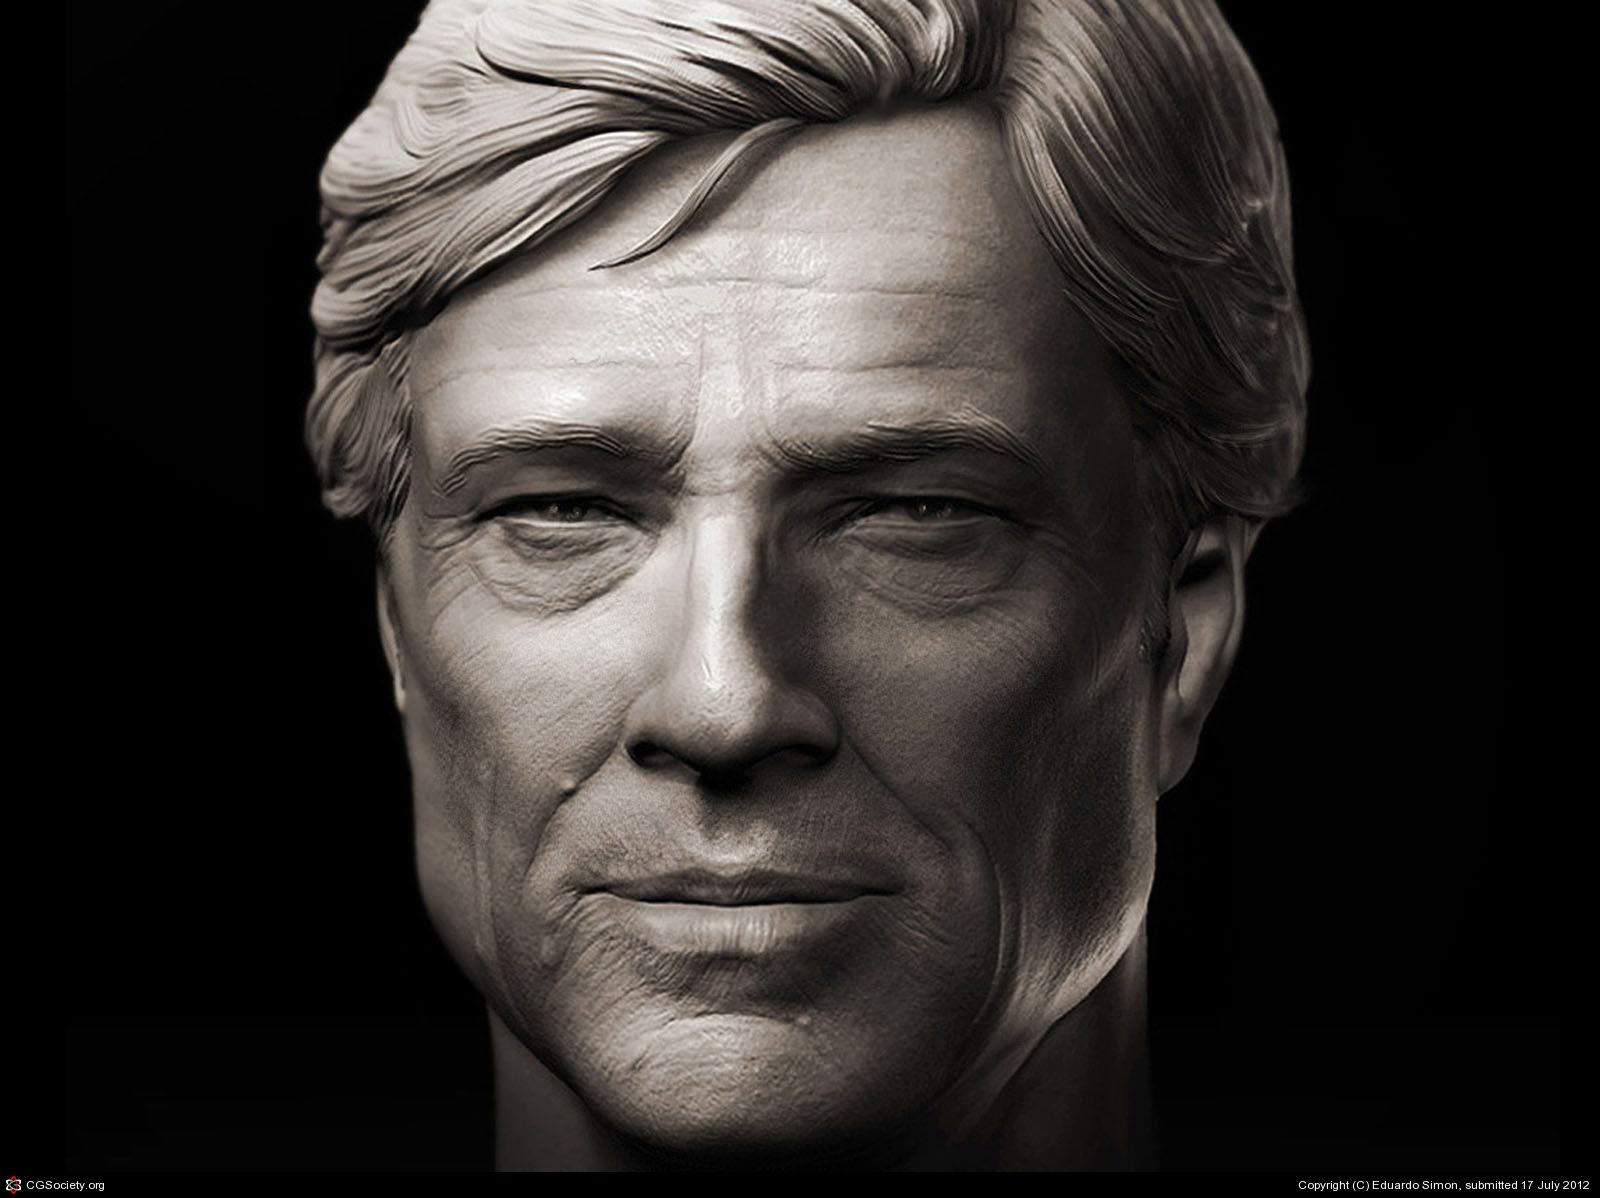 Zbrush model made for practicing human skin wrinkles,pores